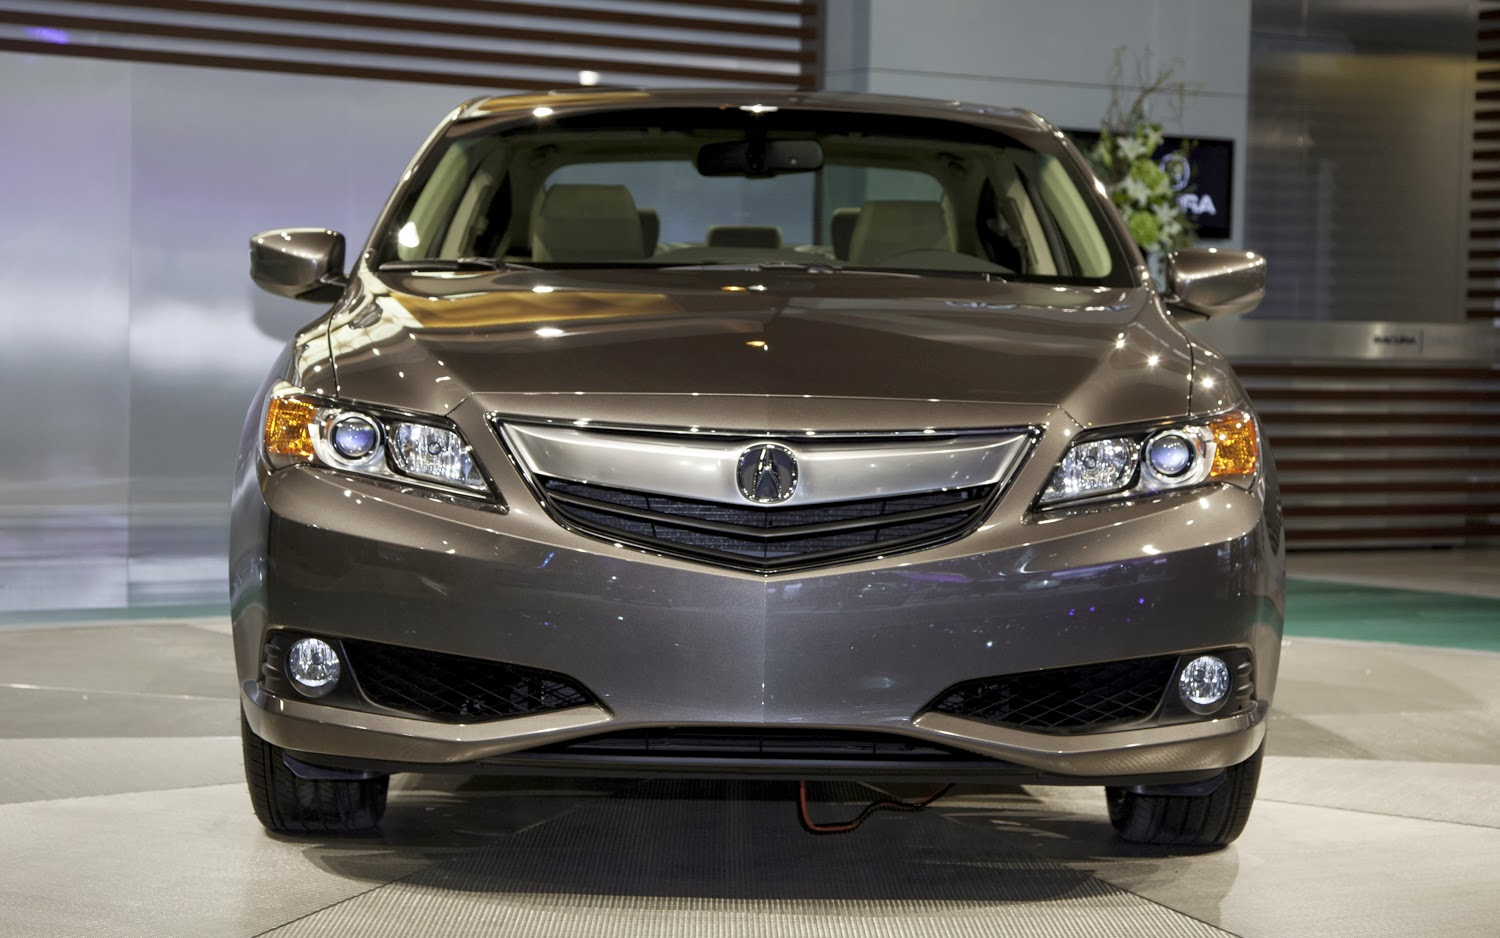 New Car Models: Acura Ilx 2014